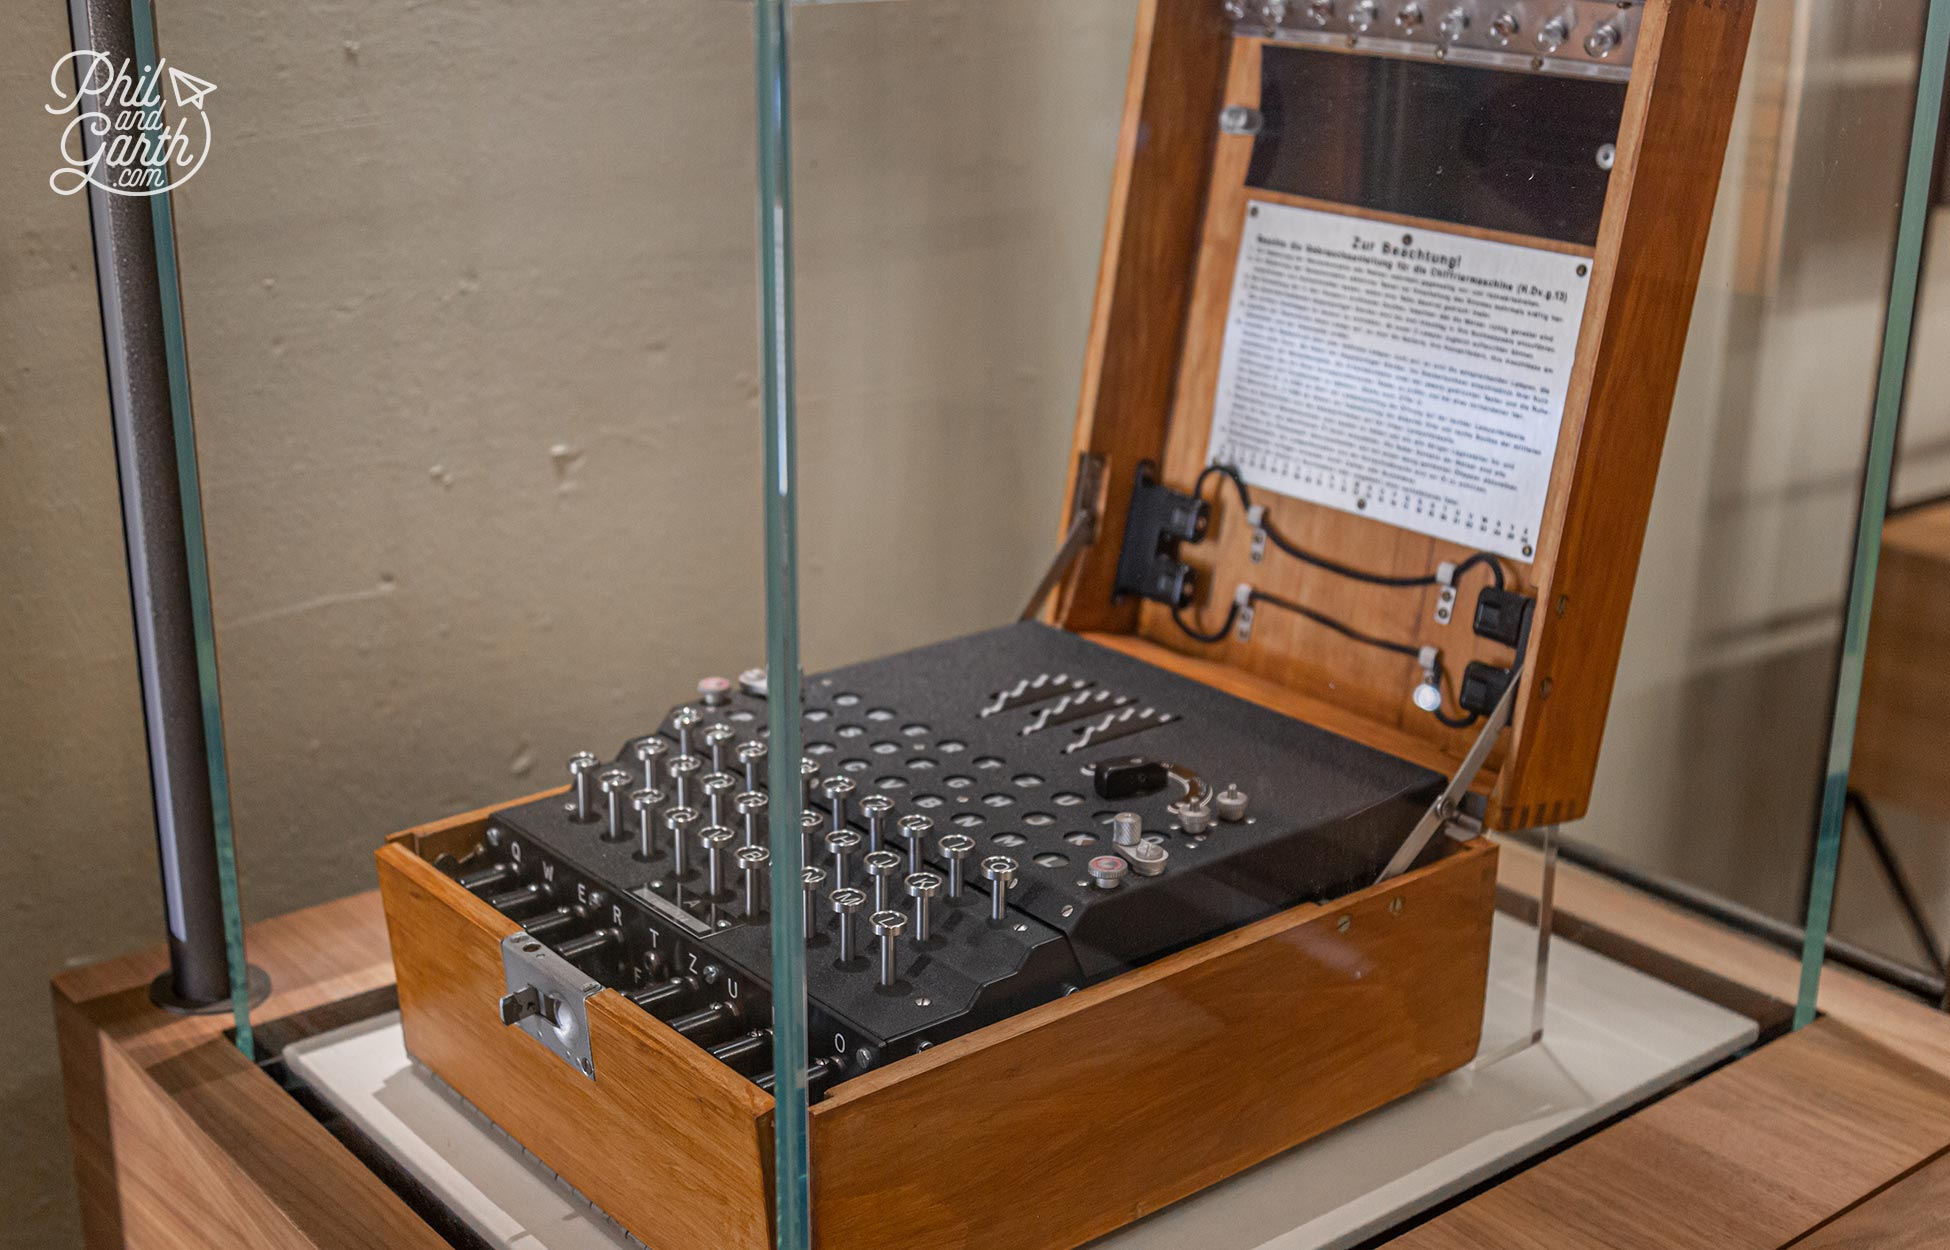 Bletchley houses the world's largest collection of Enigma machines